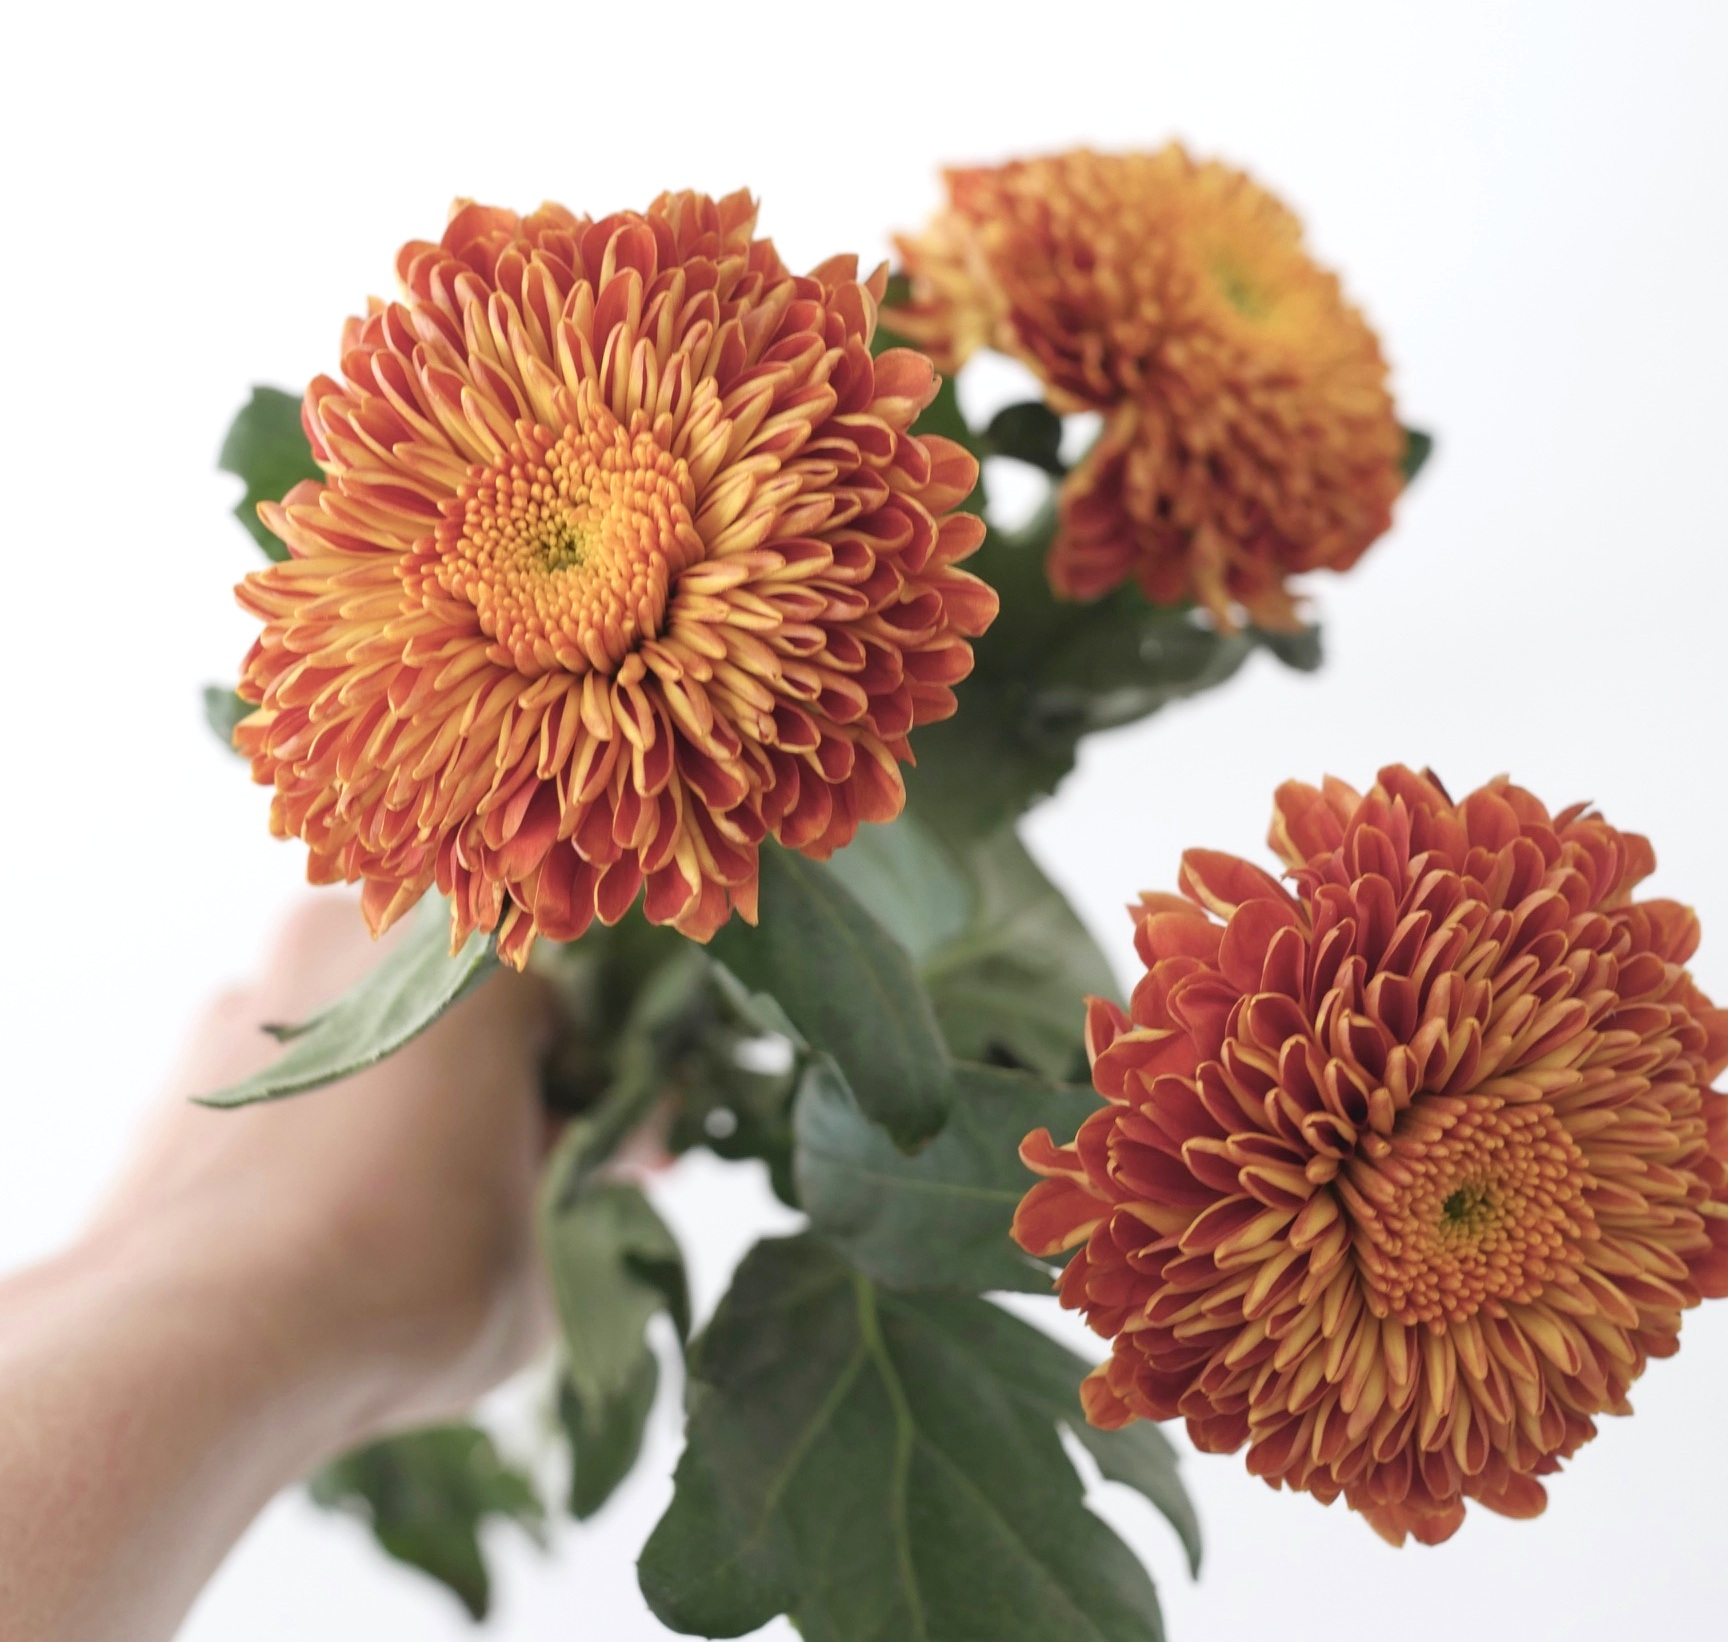 CHRYSANTHEMUM BLAZE - Another long-lasting bloom that can generally be sourced year-round. The delightful tones of rust and butterscotch will begin making an appearance come autumn. These are tricky colors to come by, so if a rusty orange is in your palette, turn your attention this way!